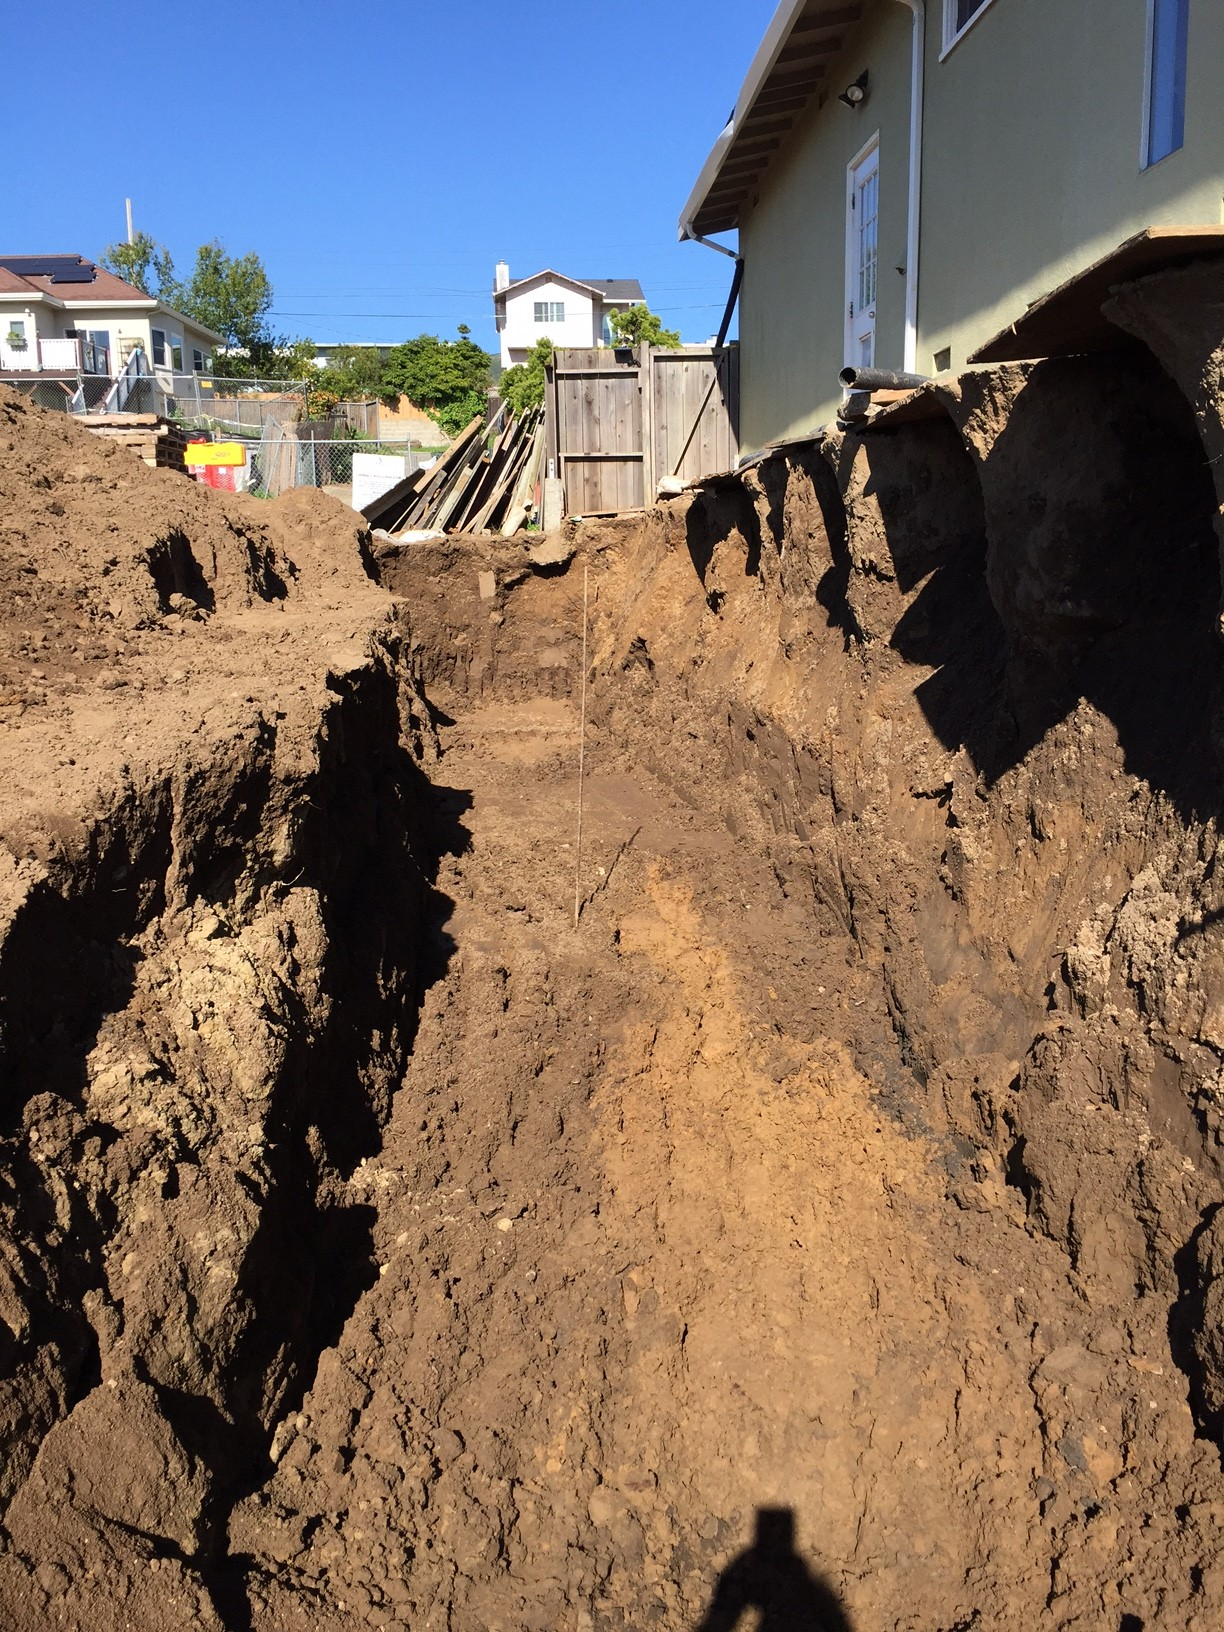 We have to ask - would you feel comfortable returning to your home of 40 years with the side yard still looking like this?